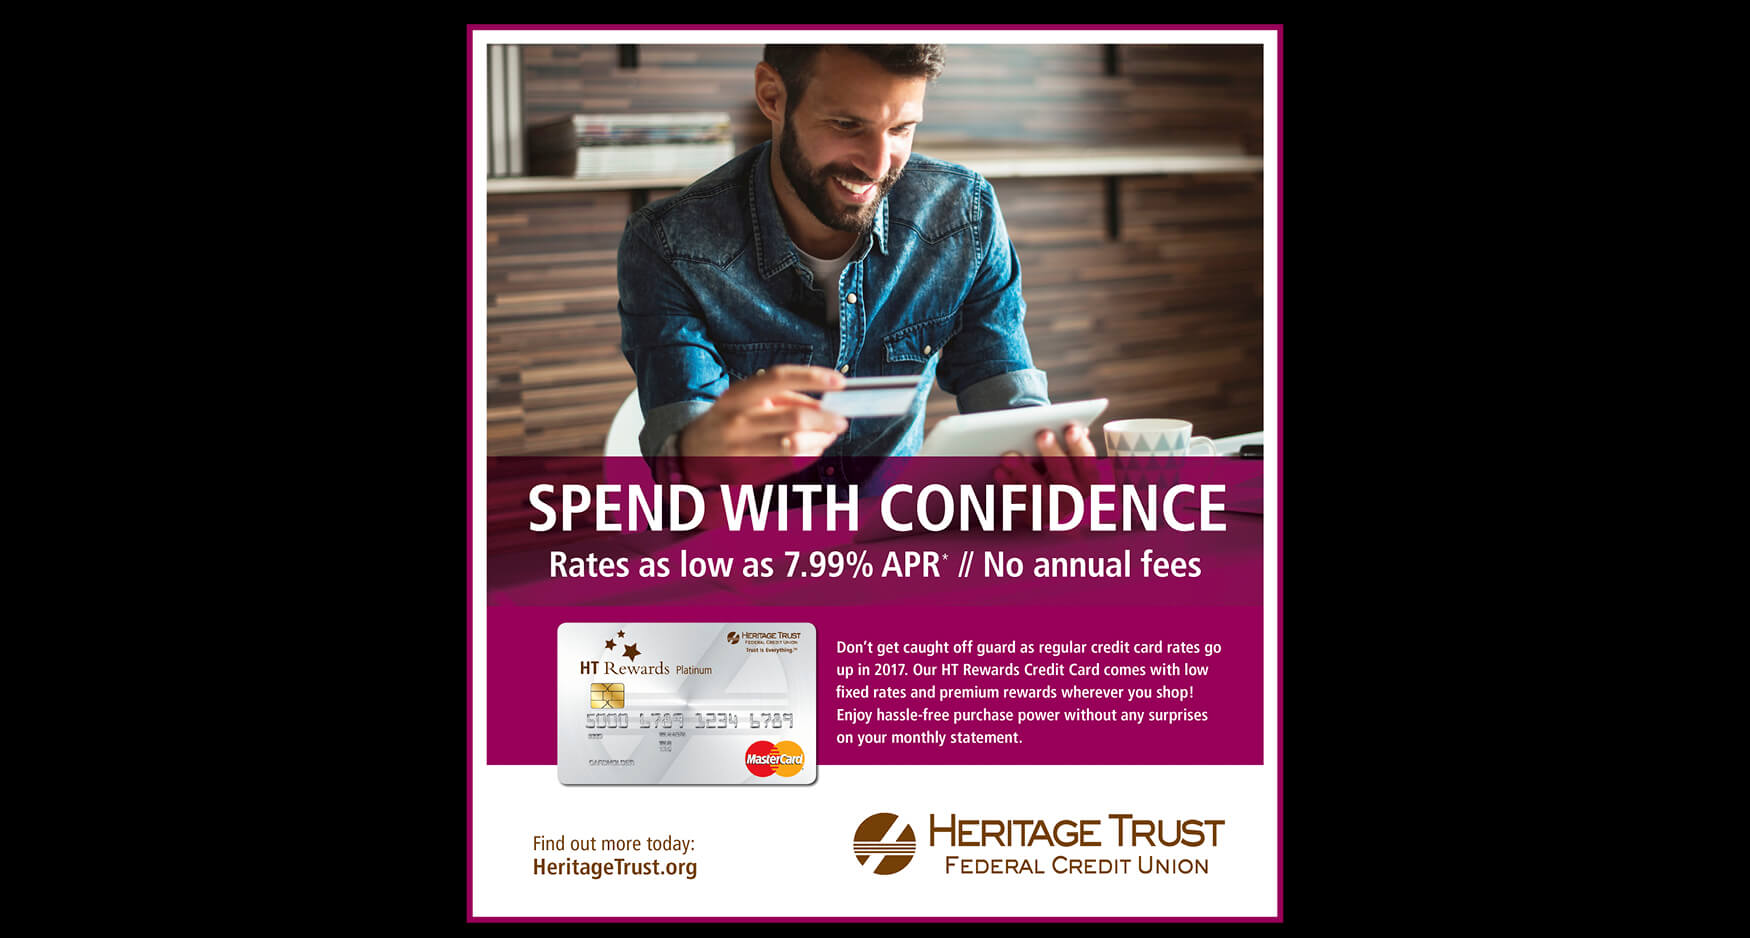 4 Print - Heritage Trust Federal Credit Union - Consumer Advertising